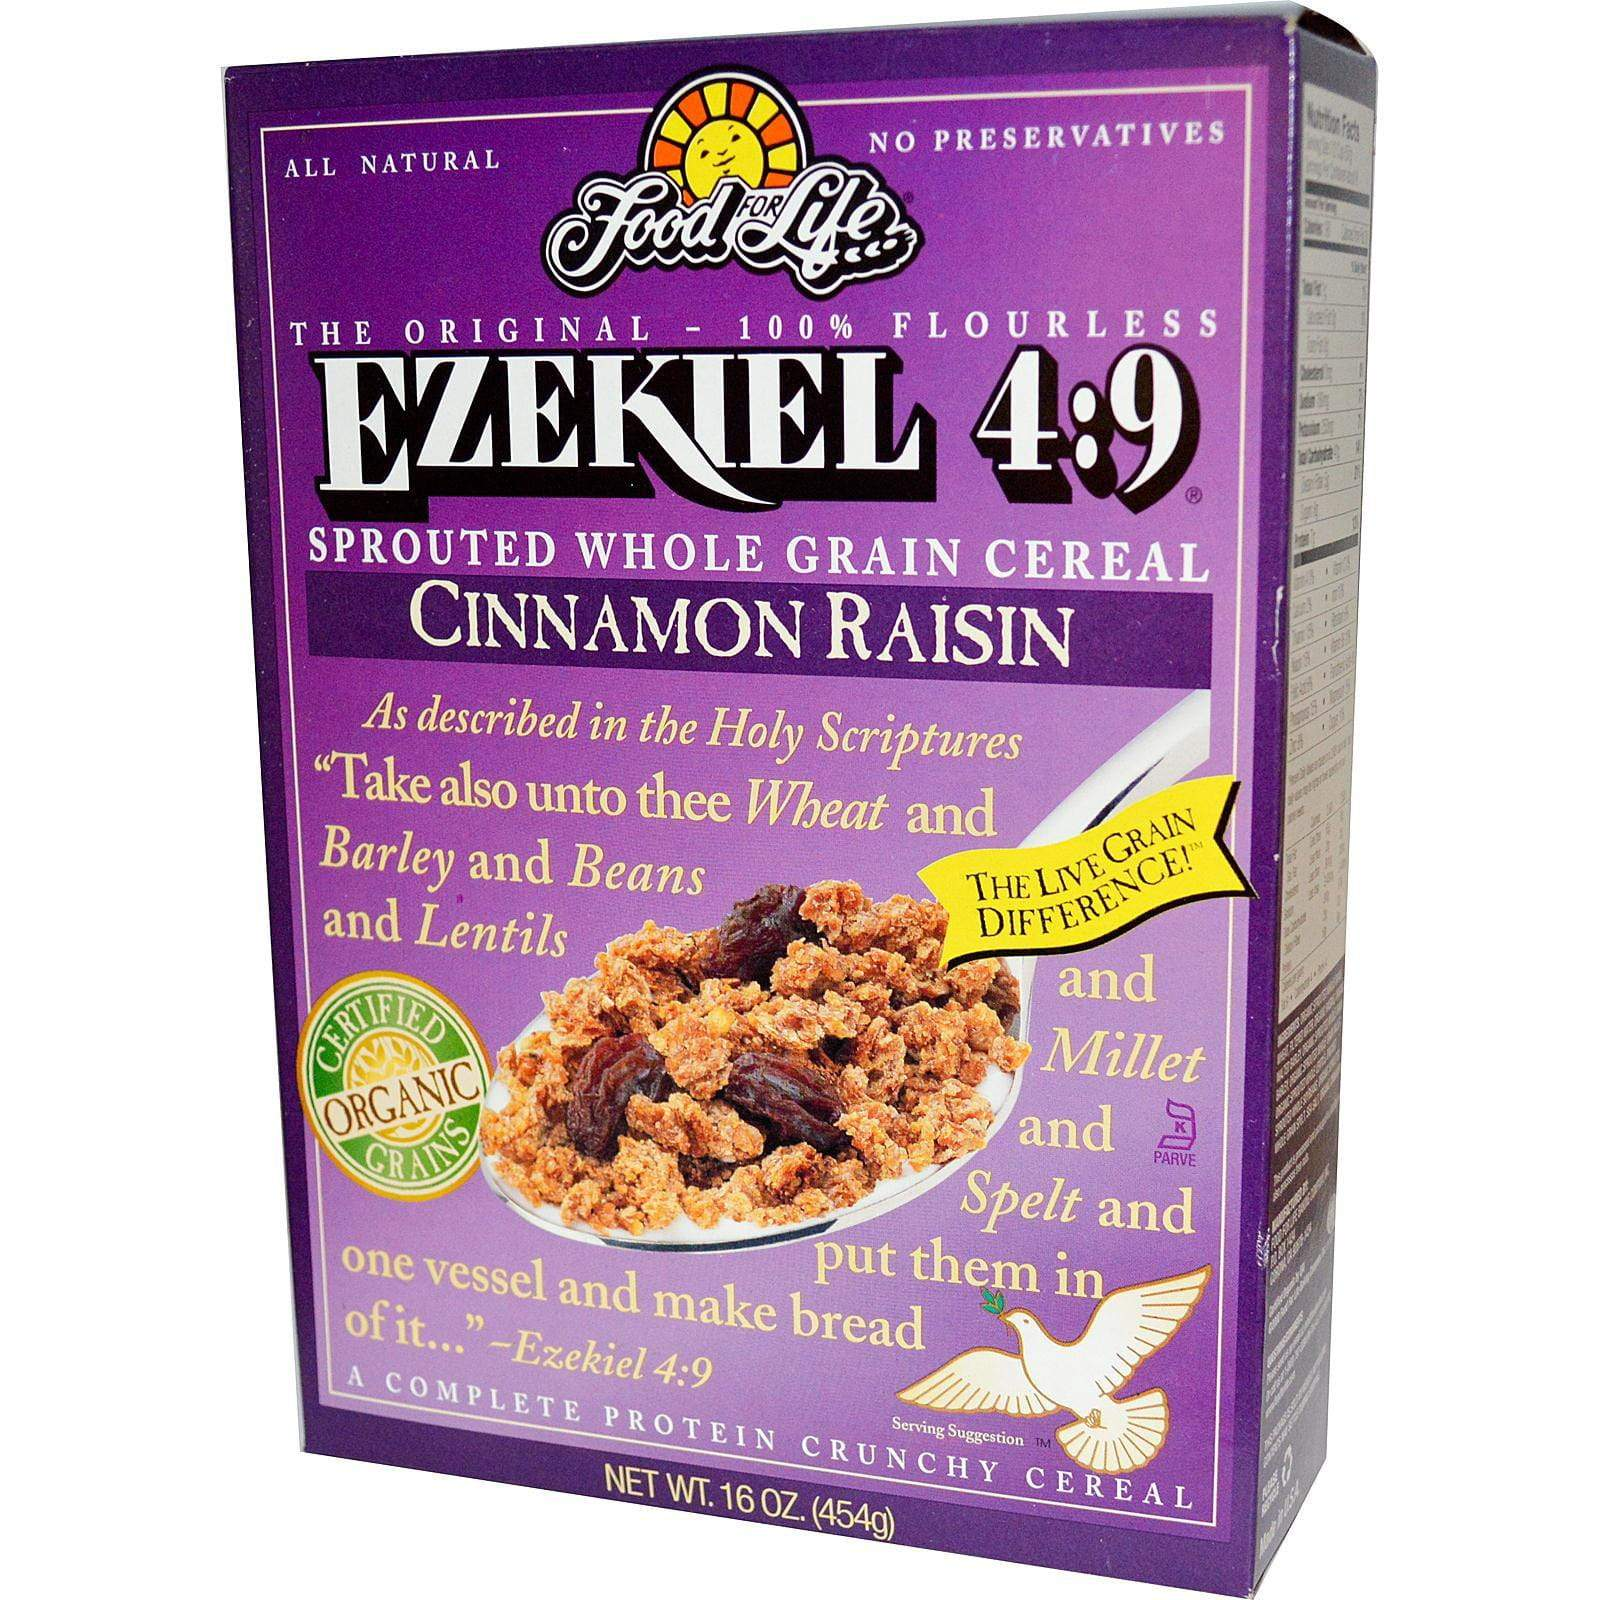 Ezekiel 4:9 Cereal Cinnamon Raisin 454g